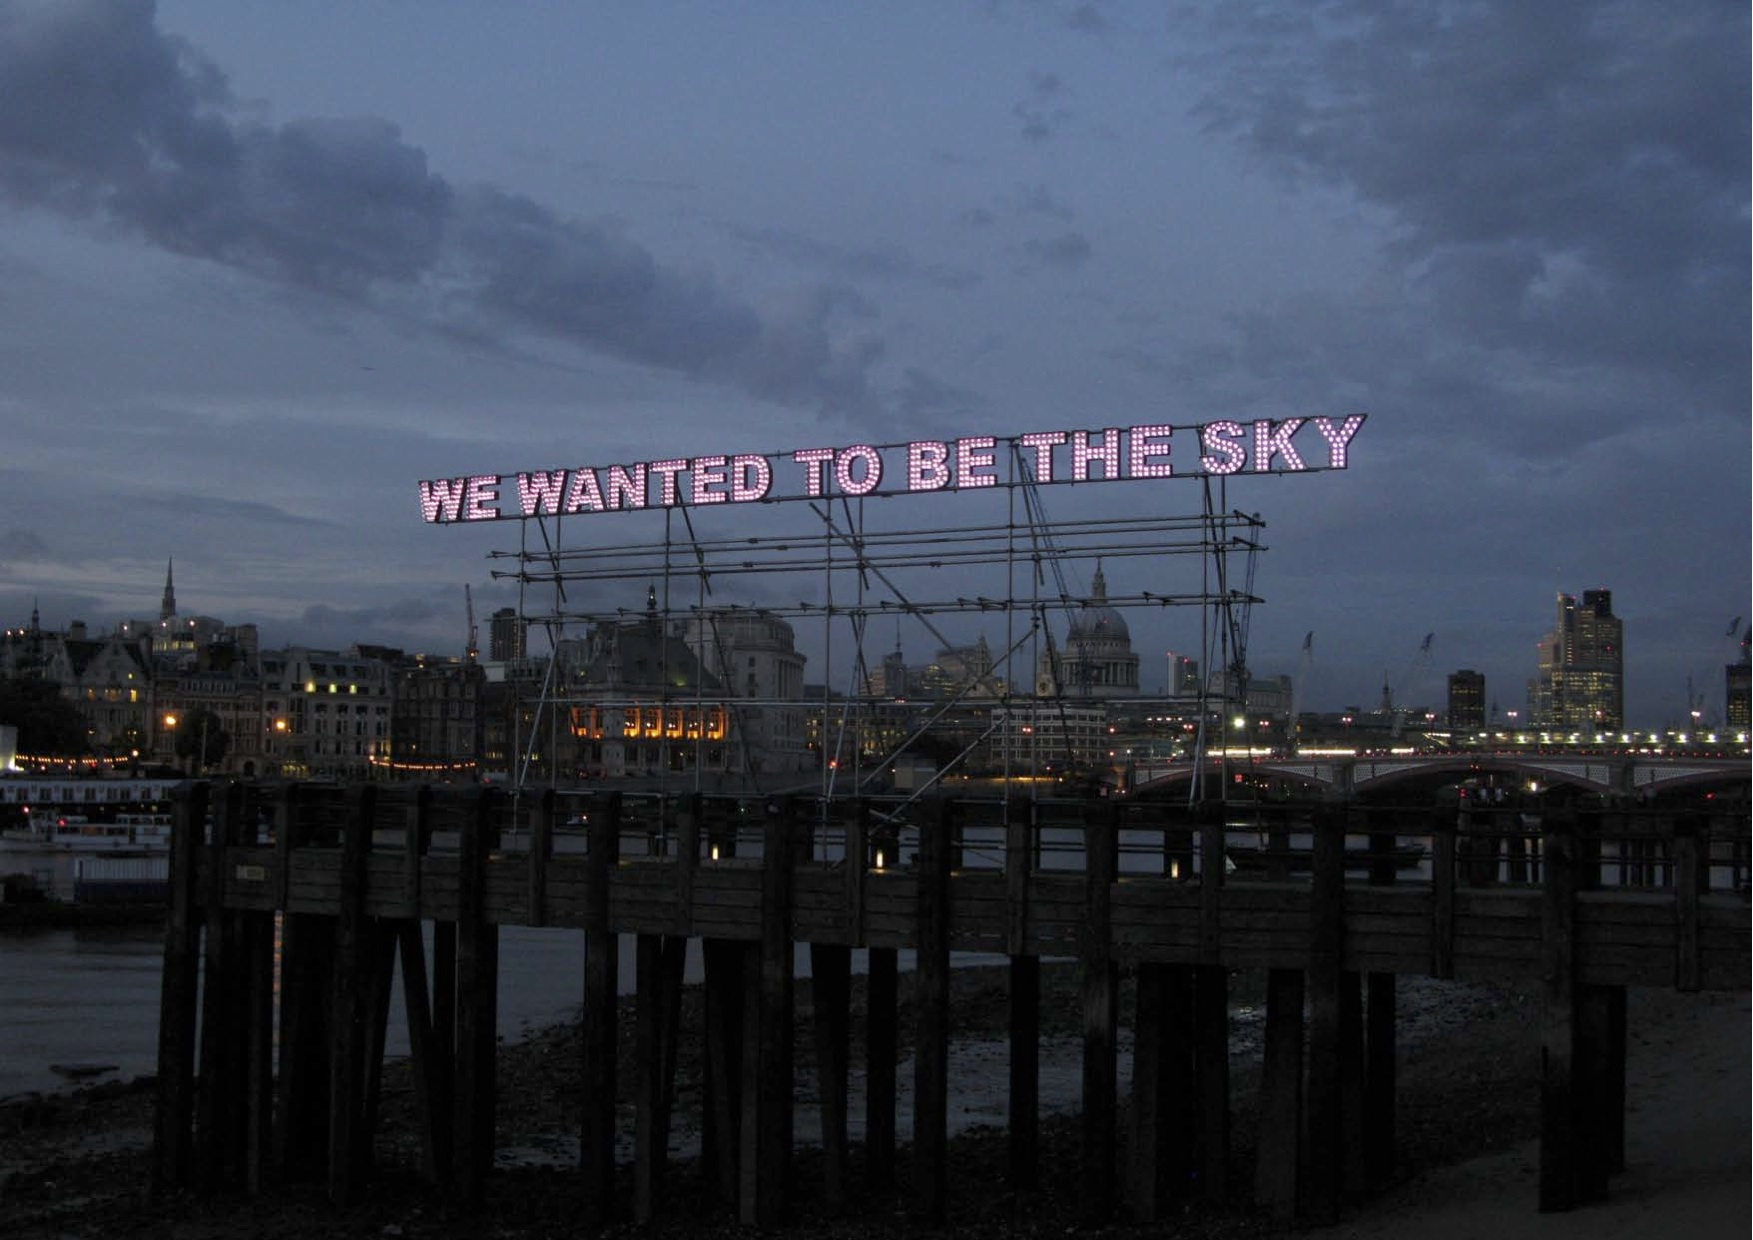 Tim Etchells, We Wanted, 2011. Installation view. Southbank, London, UK.